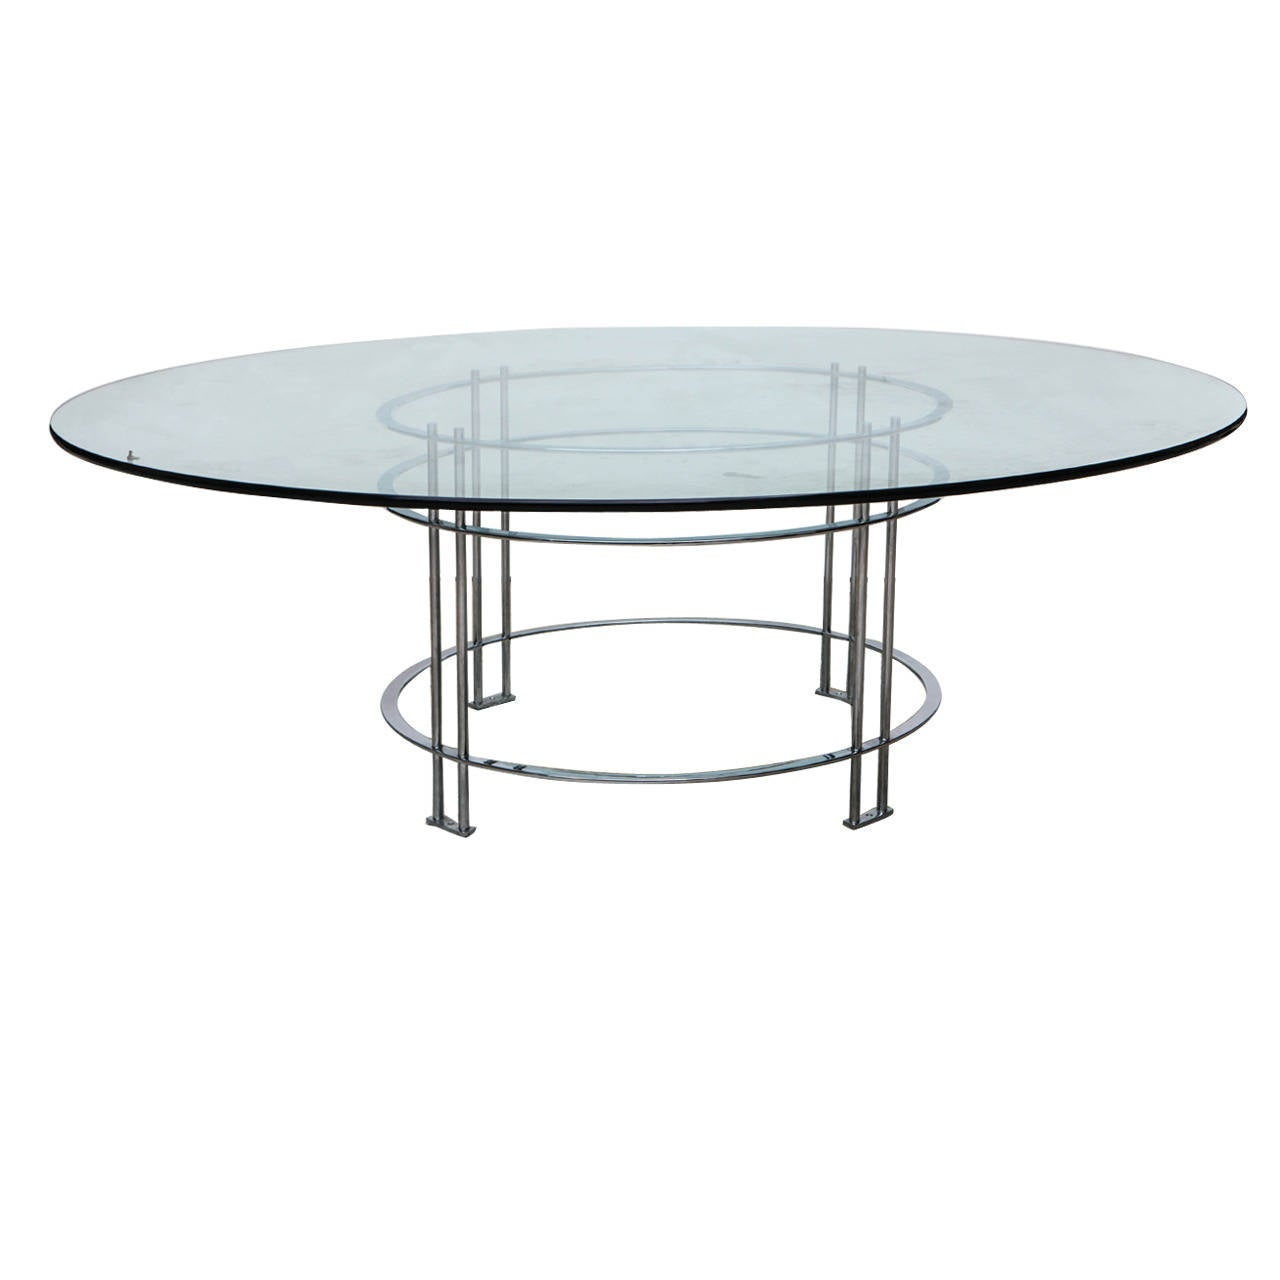 Vintage round dining table with glass top for sale at 1stdibs for Round dining room tables for sale